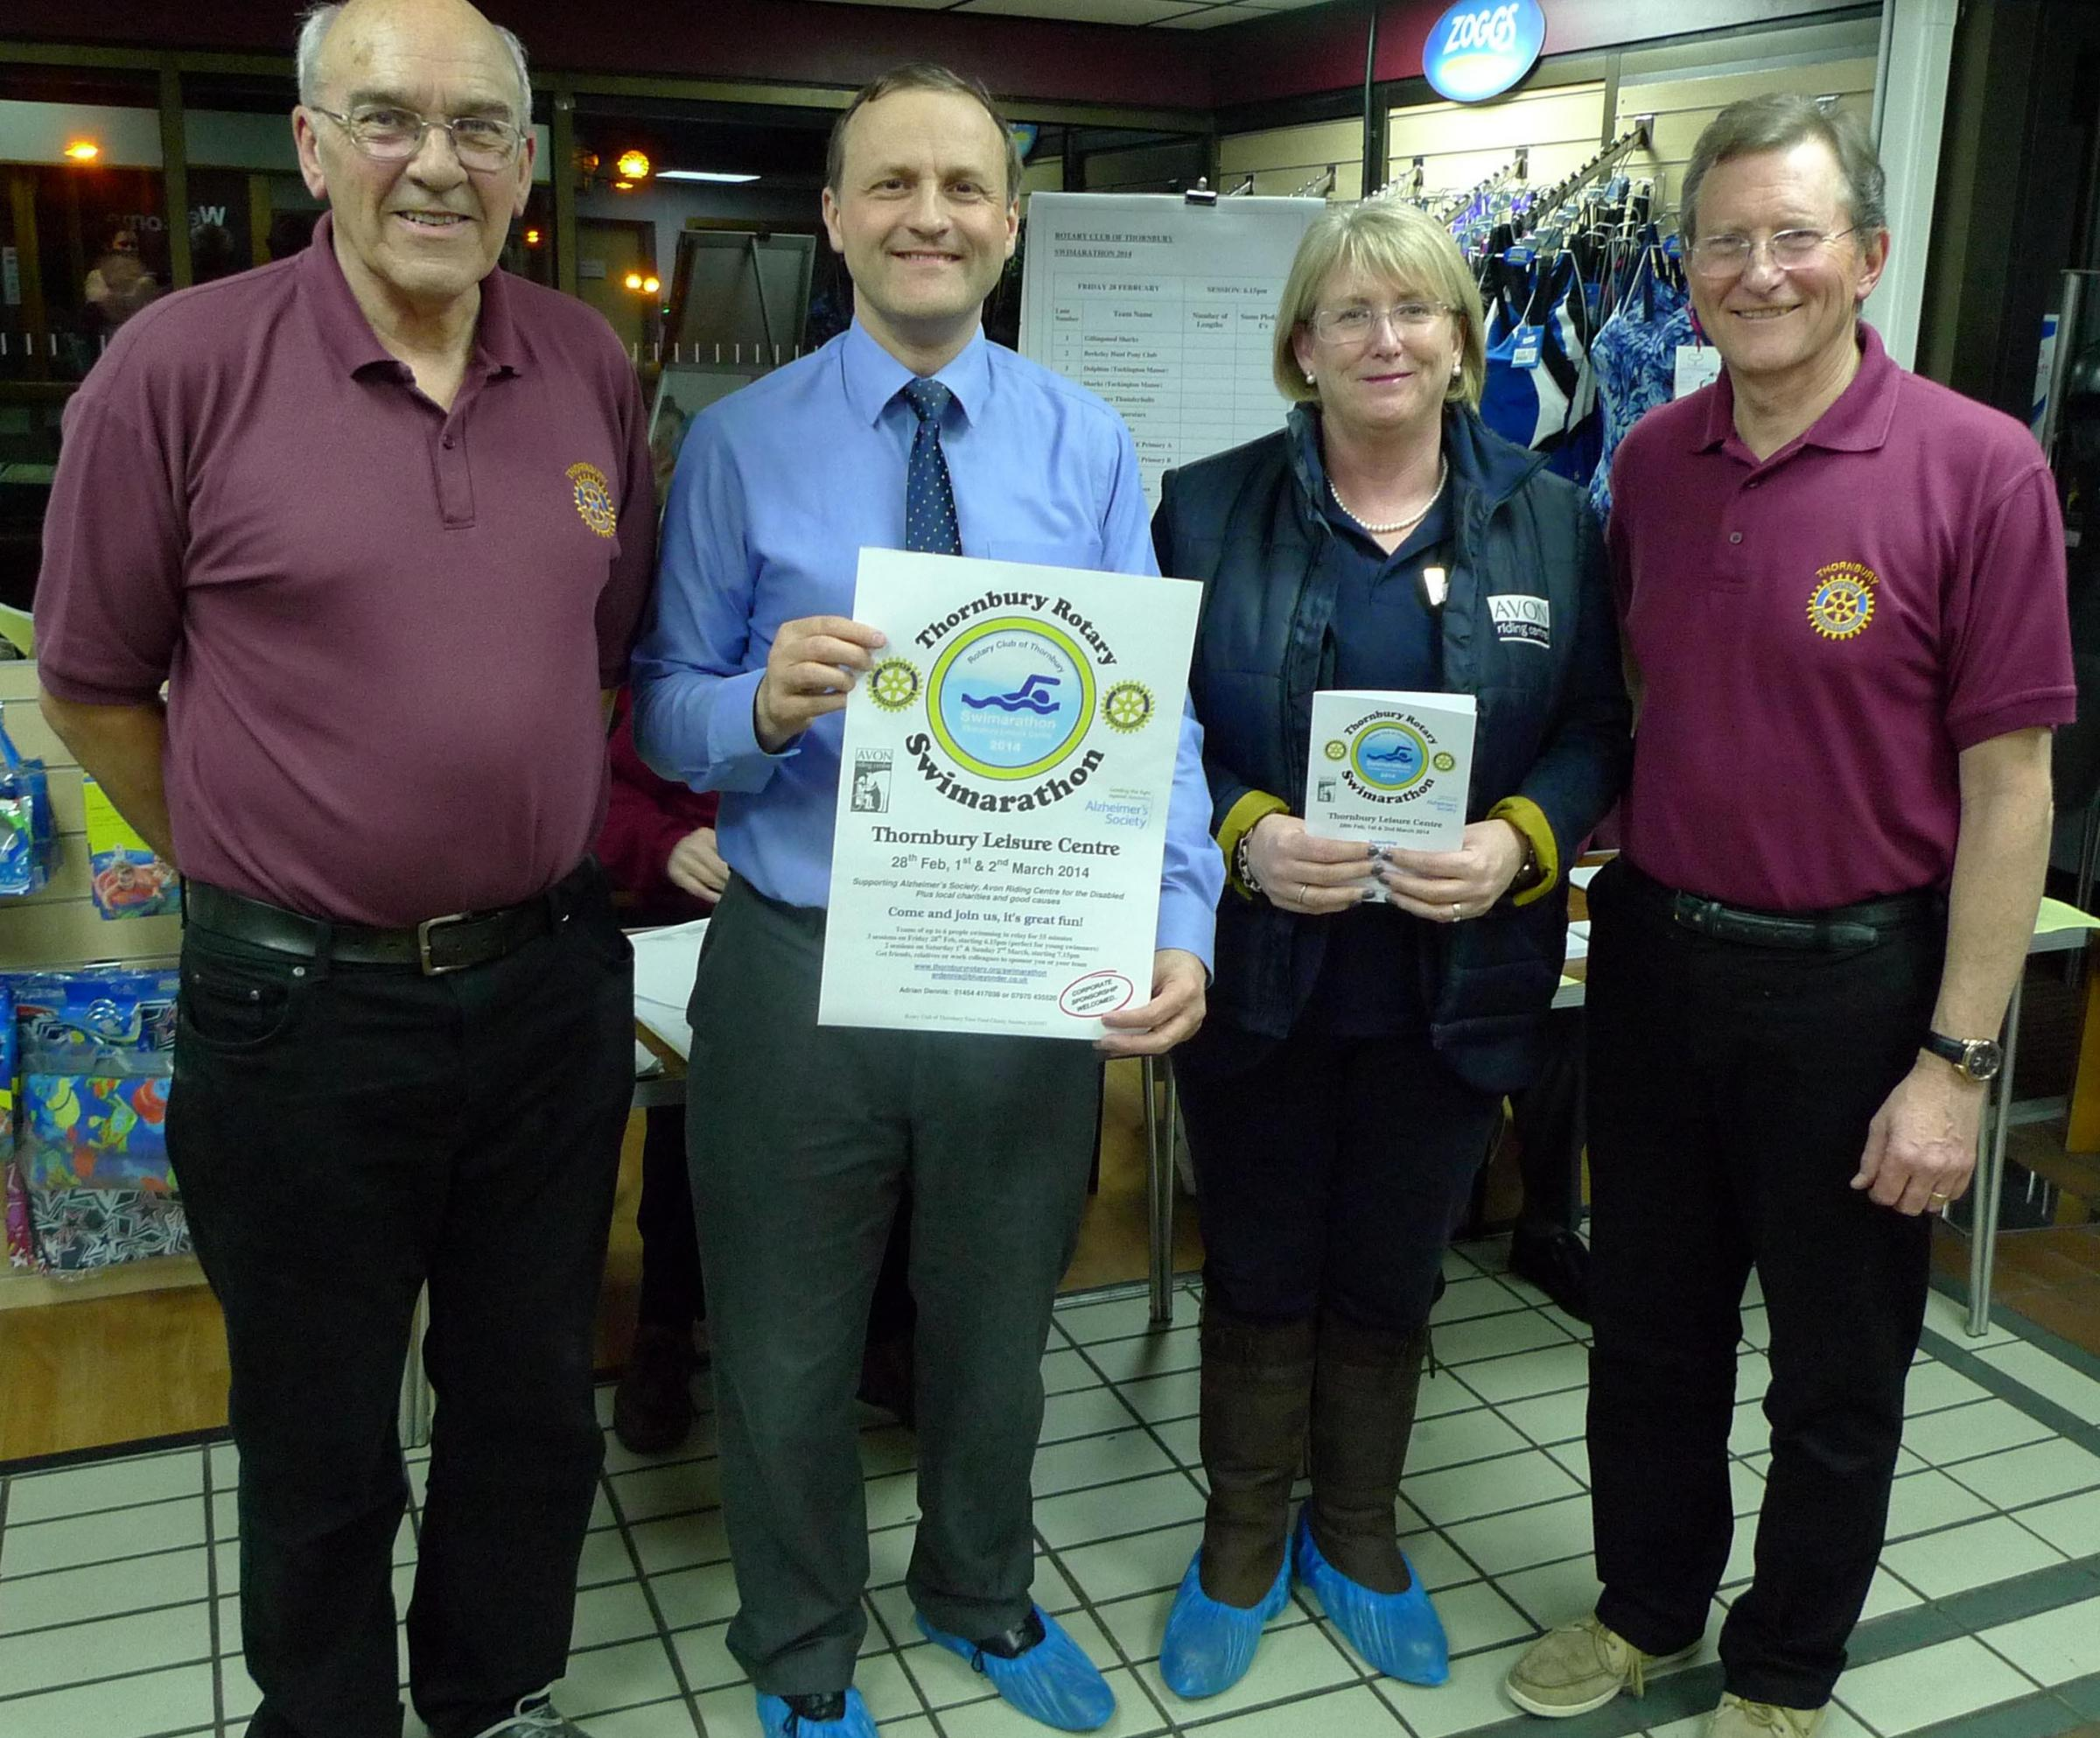 Another successful year for Thornbury swimathon